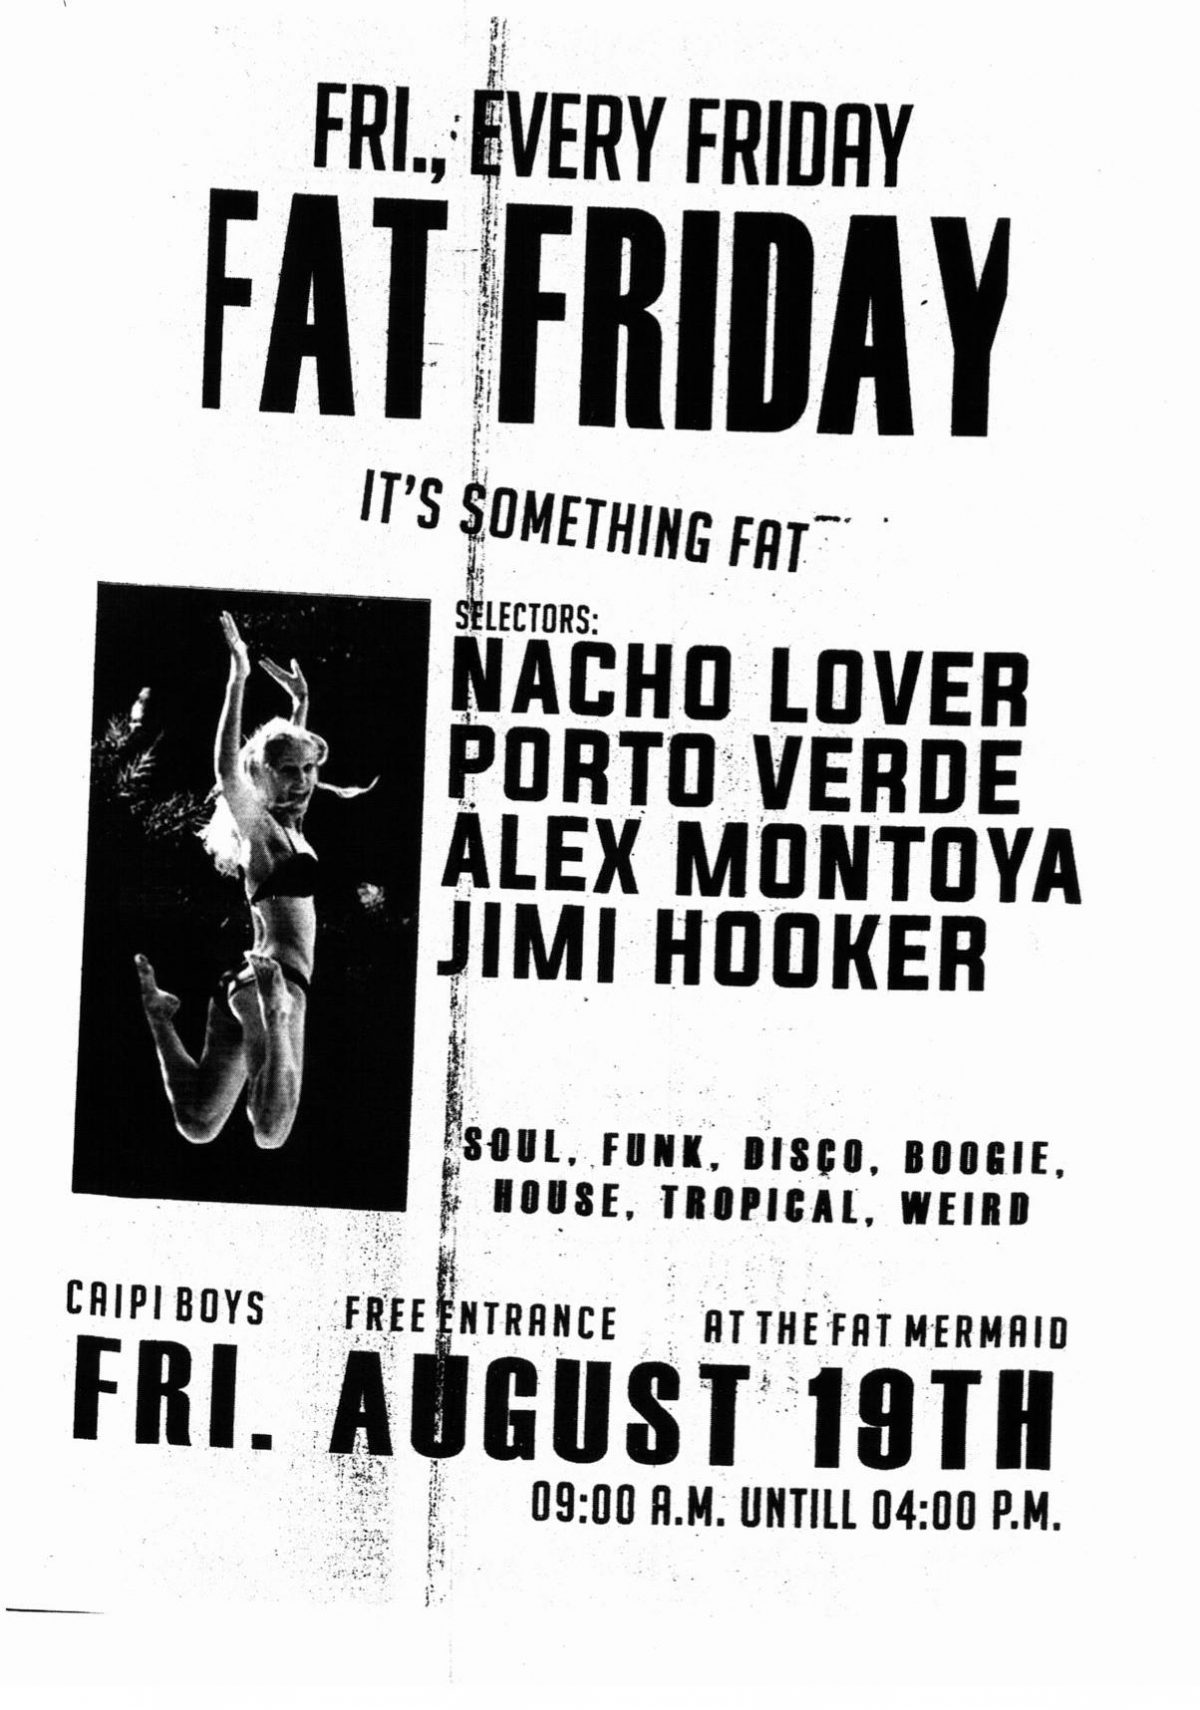 FAT FRIDAY AUGUST 12